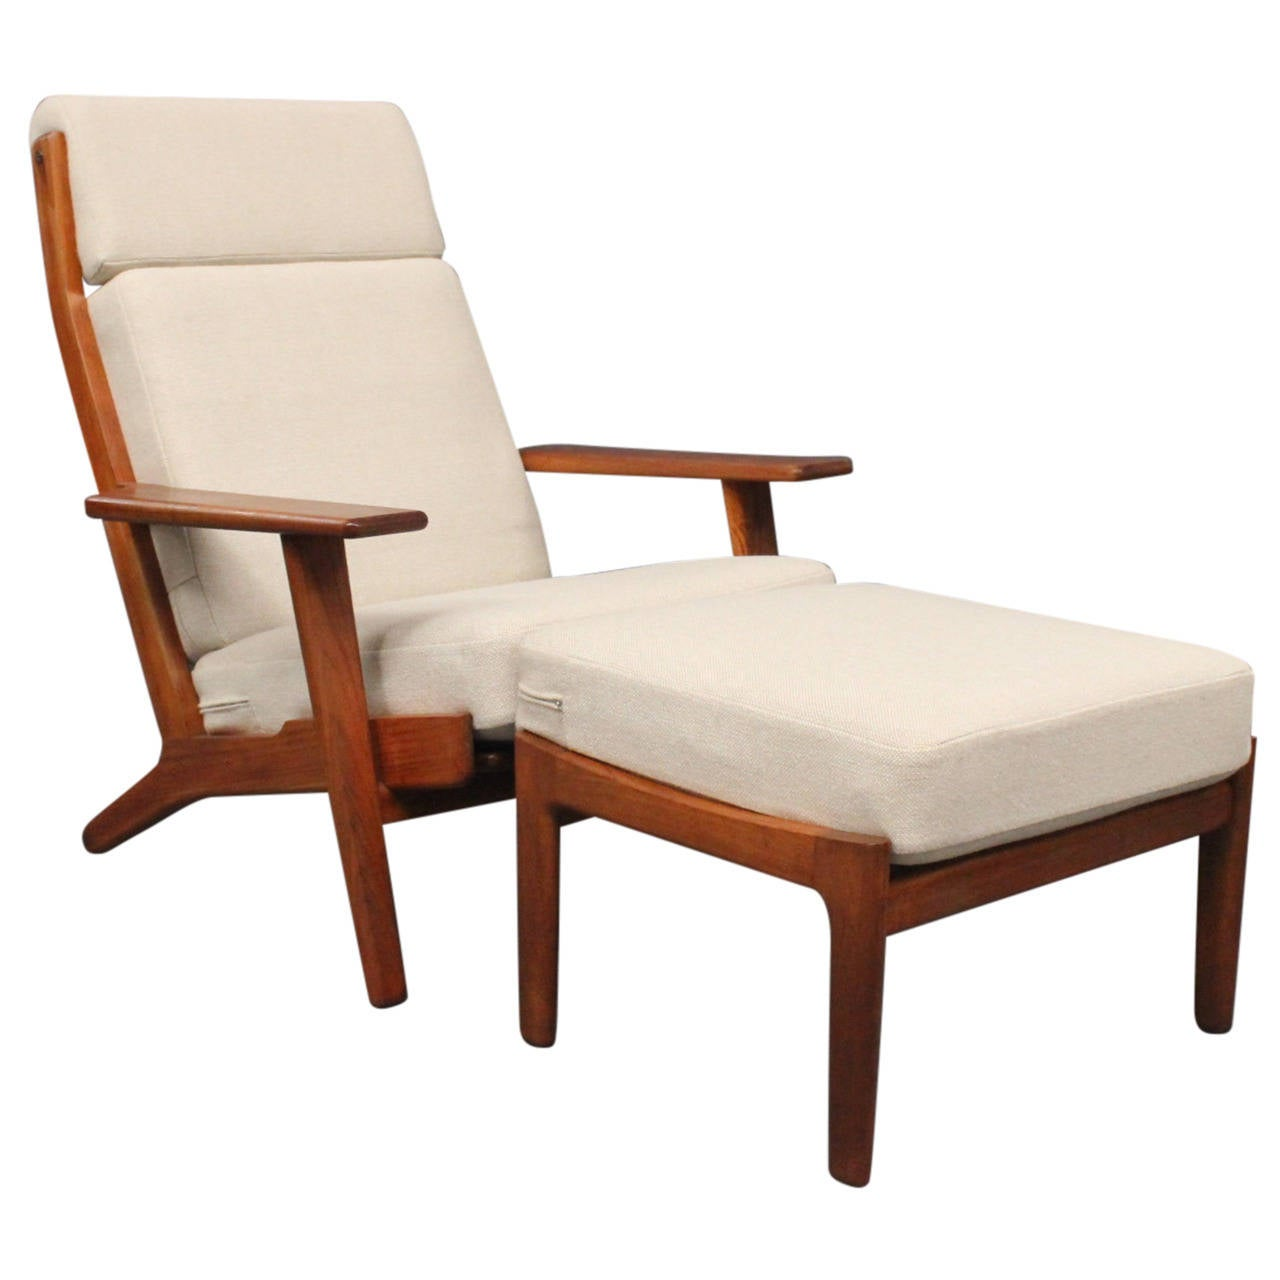 hans j wegner lounge chair with footstool model ge in teak  - hans j wegner lounge chair with footstool model ge in teak